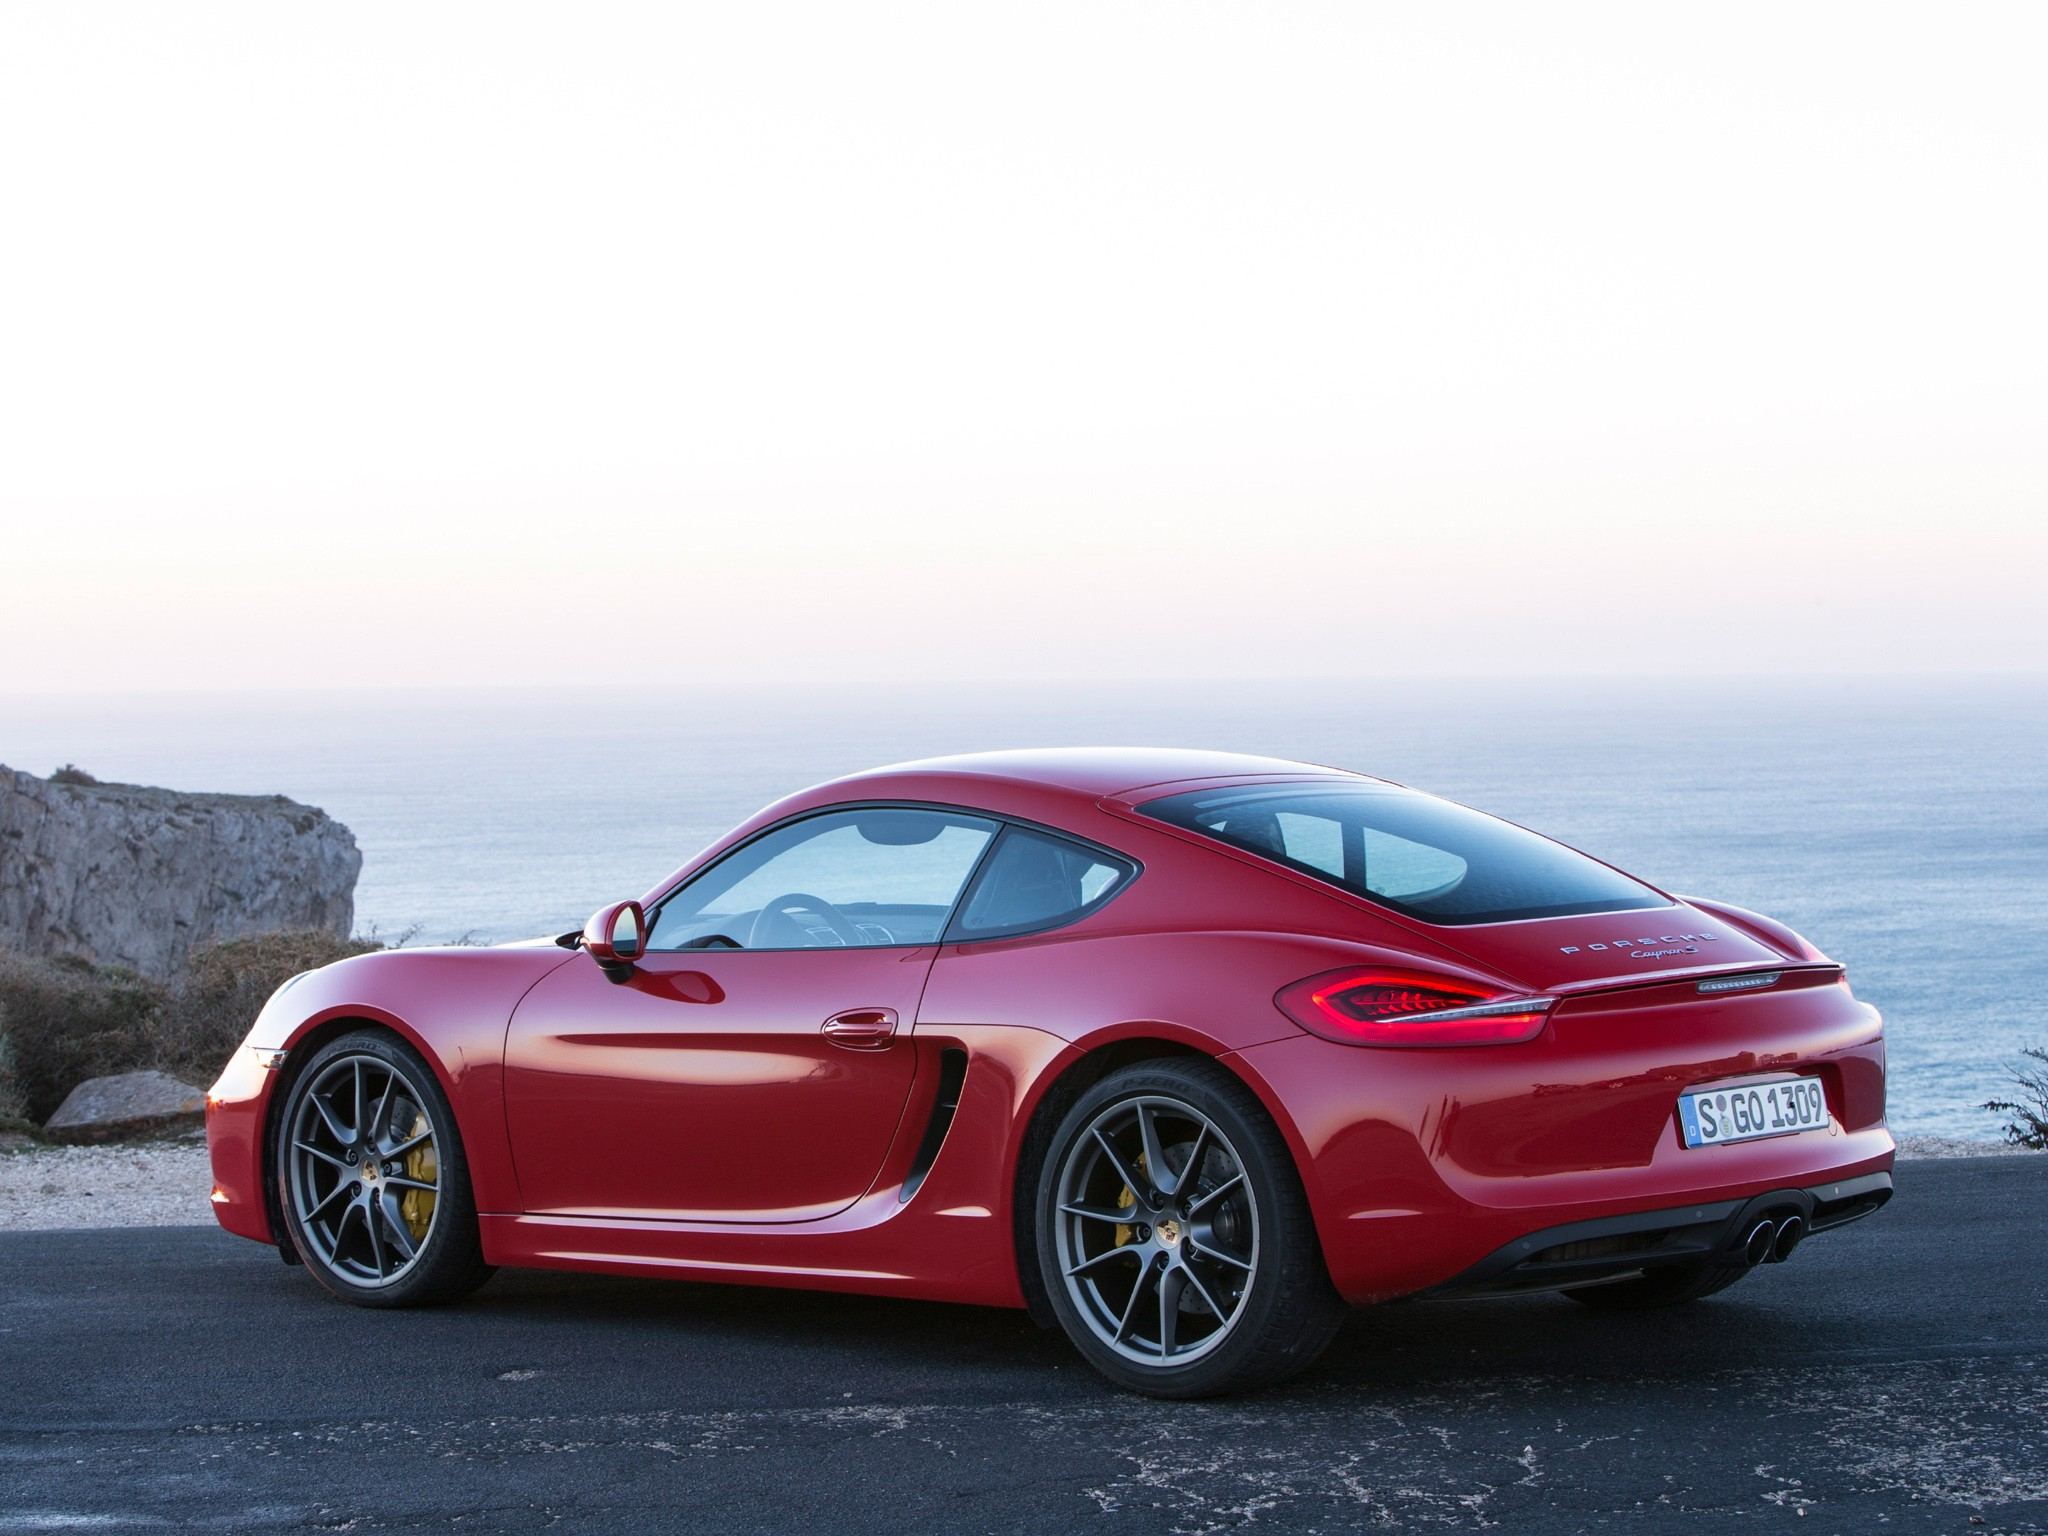 porsche cayman s 981 specs photos 2012 2013 2014. Black Bedroom Furniture Sets. Home Design Ideas